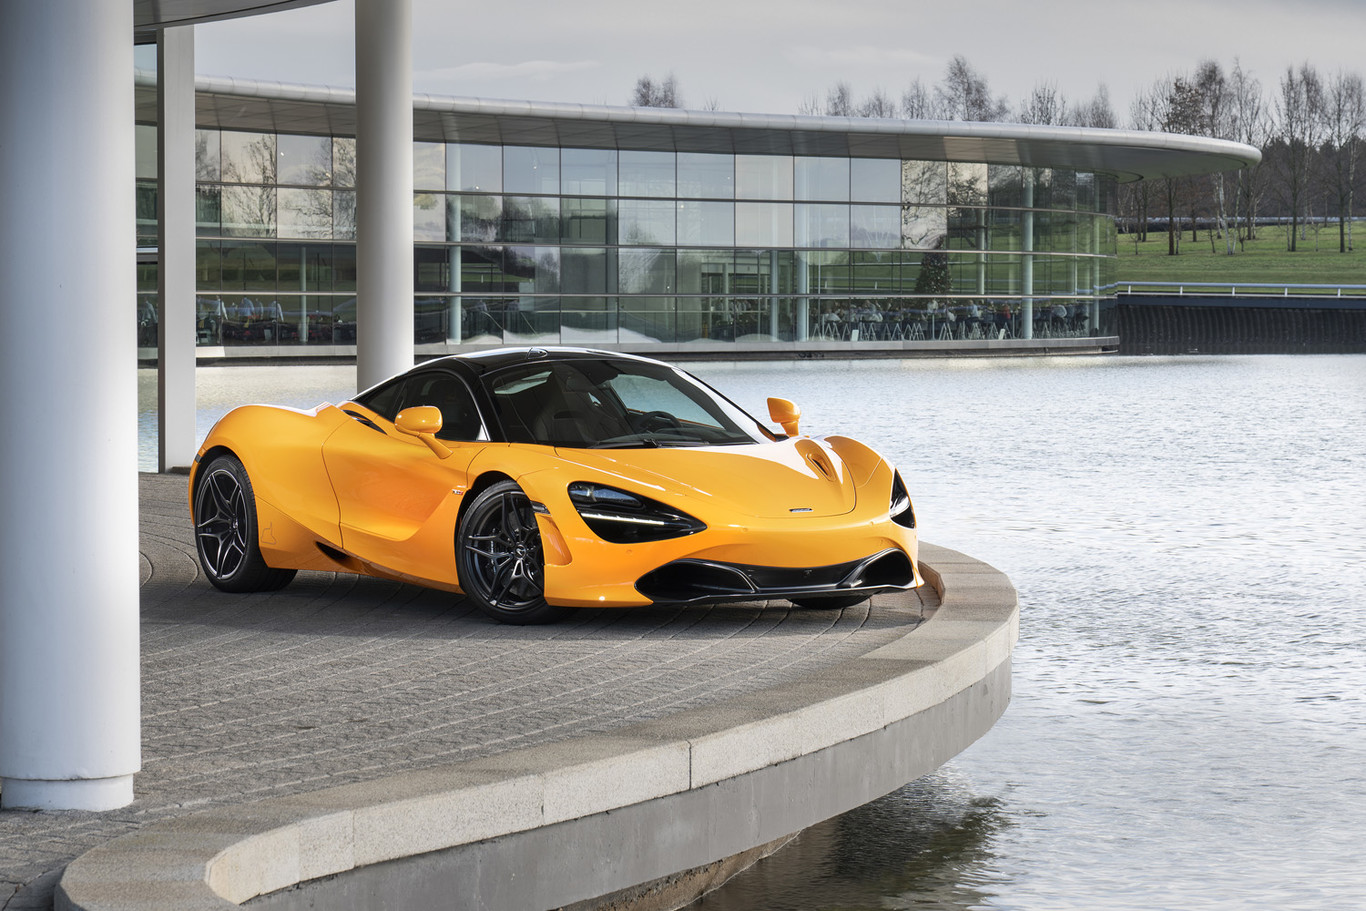 McLaren 720S 'Spa 68' from MSO celebrates McLaren's first victory in Formula 1